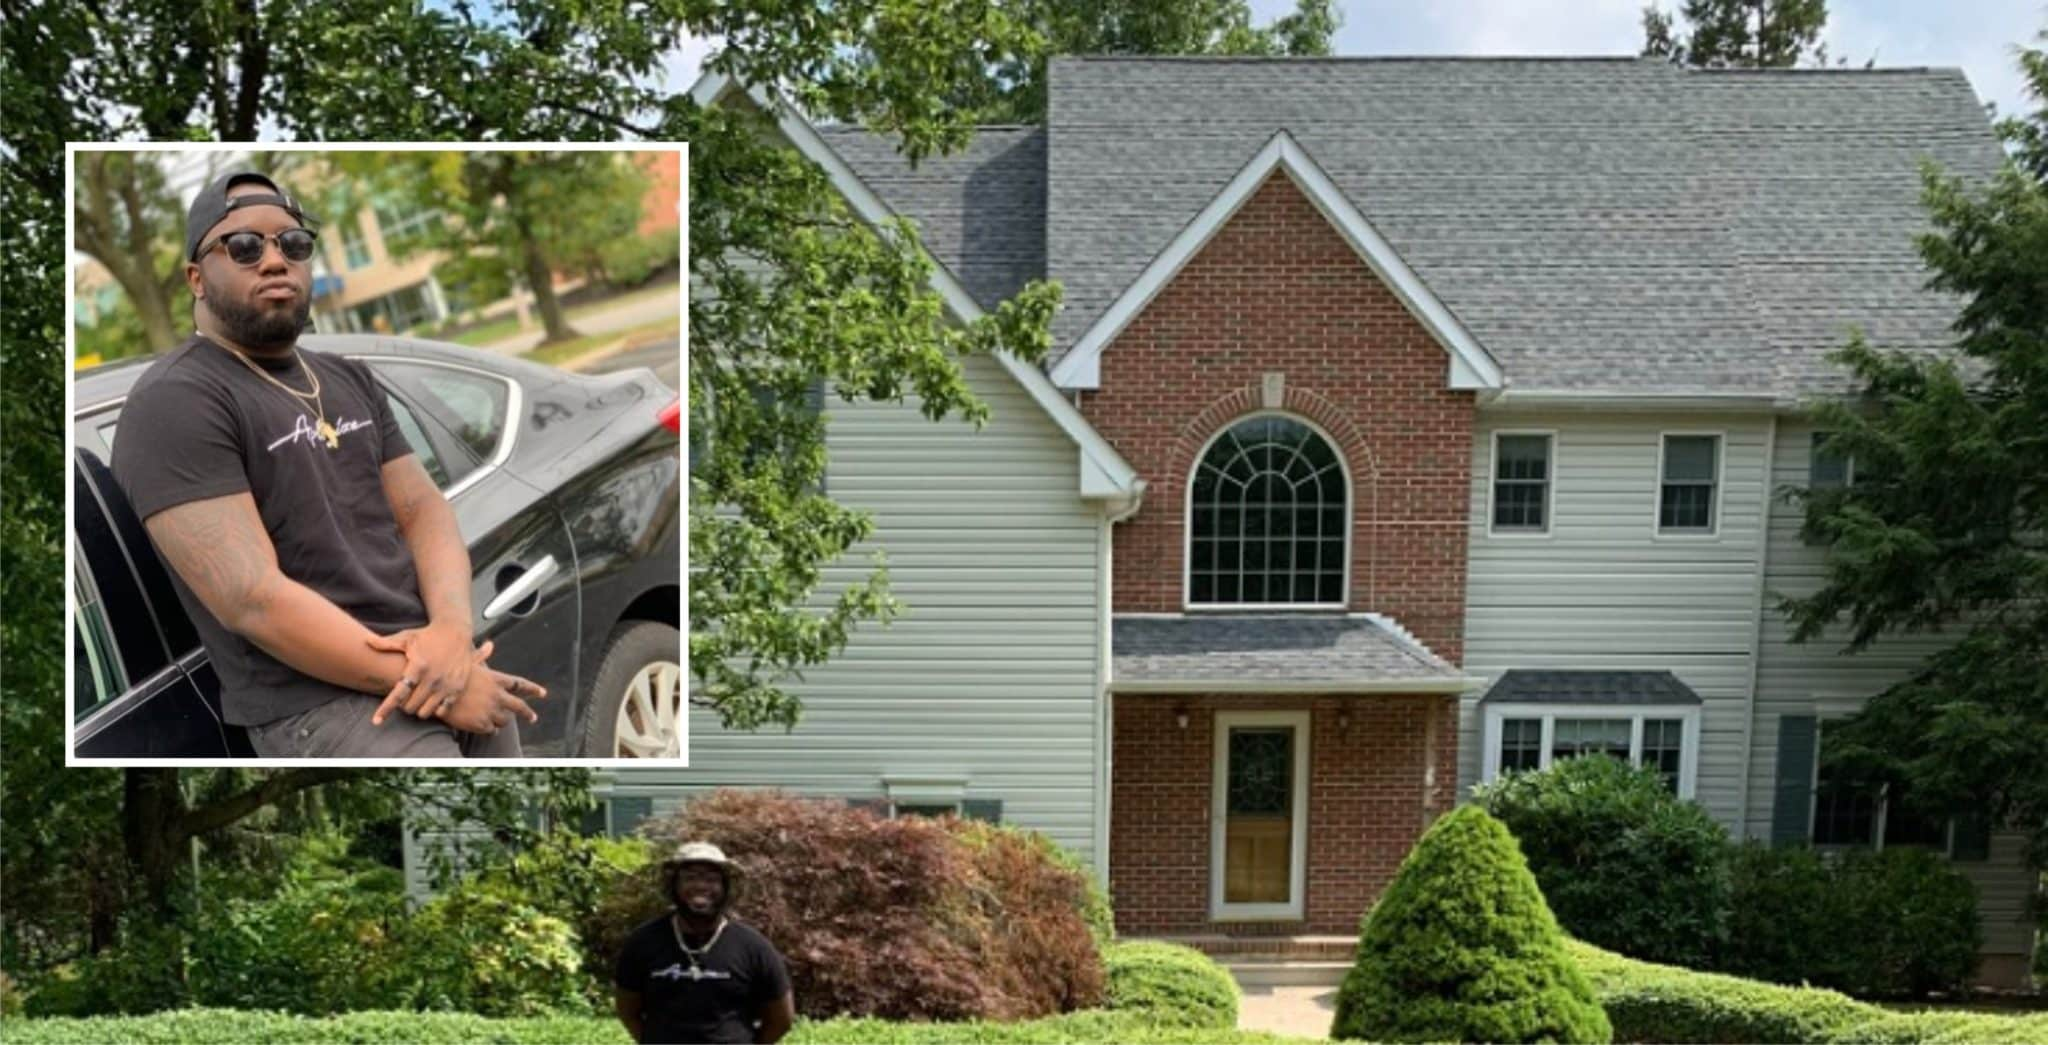 Man builds mansion after being homeless